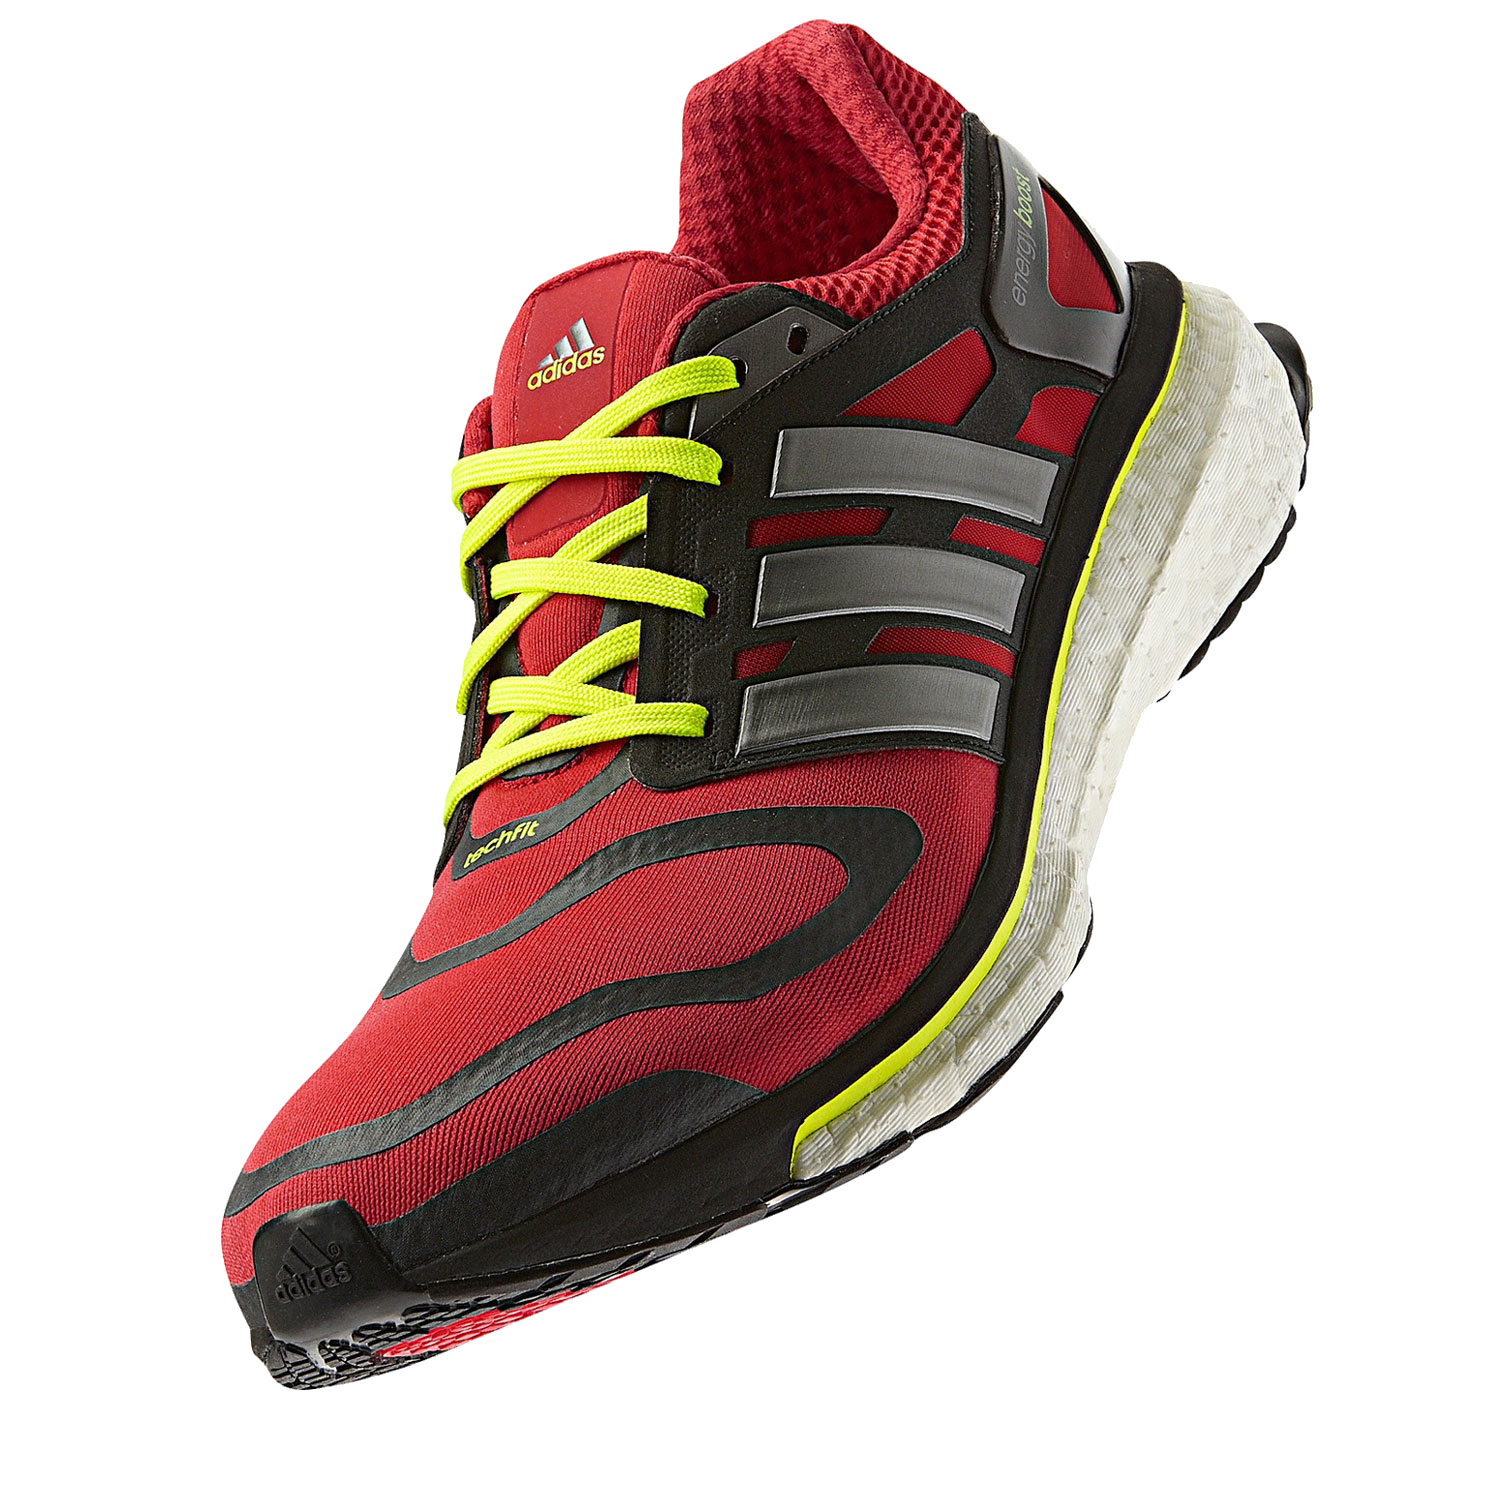 Adidas Shoes Png Picture PNG Image - Shoes PNG